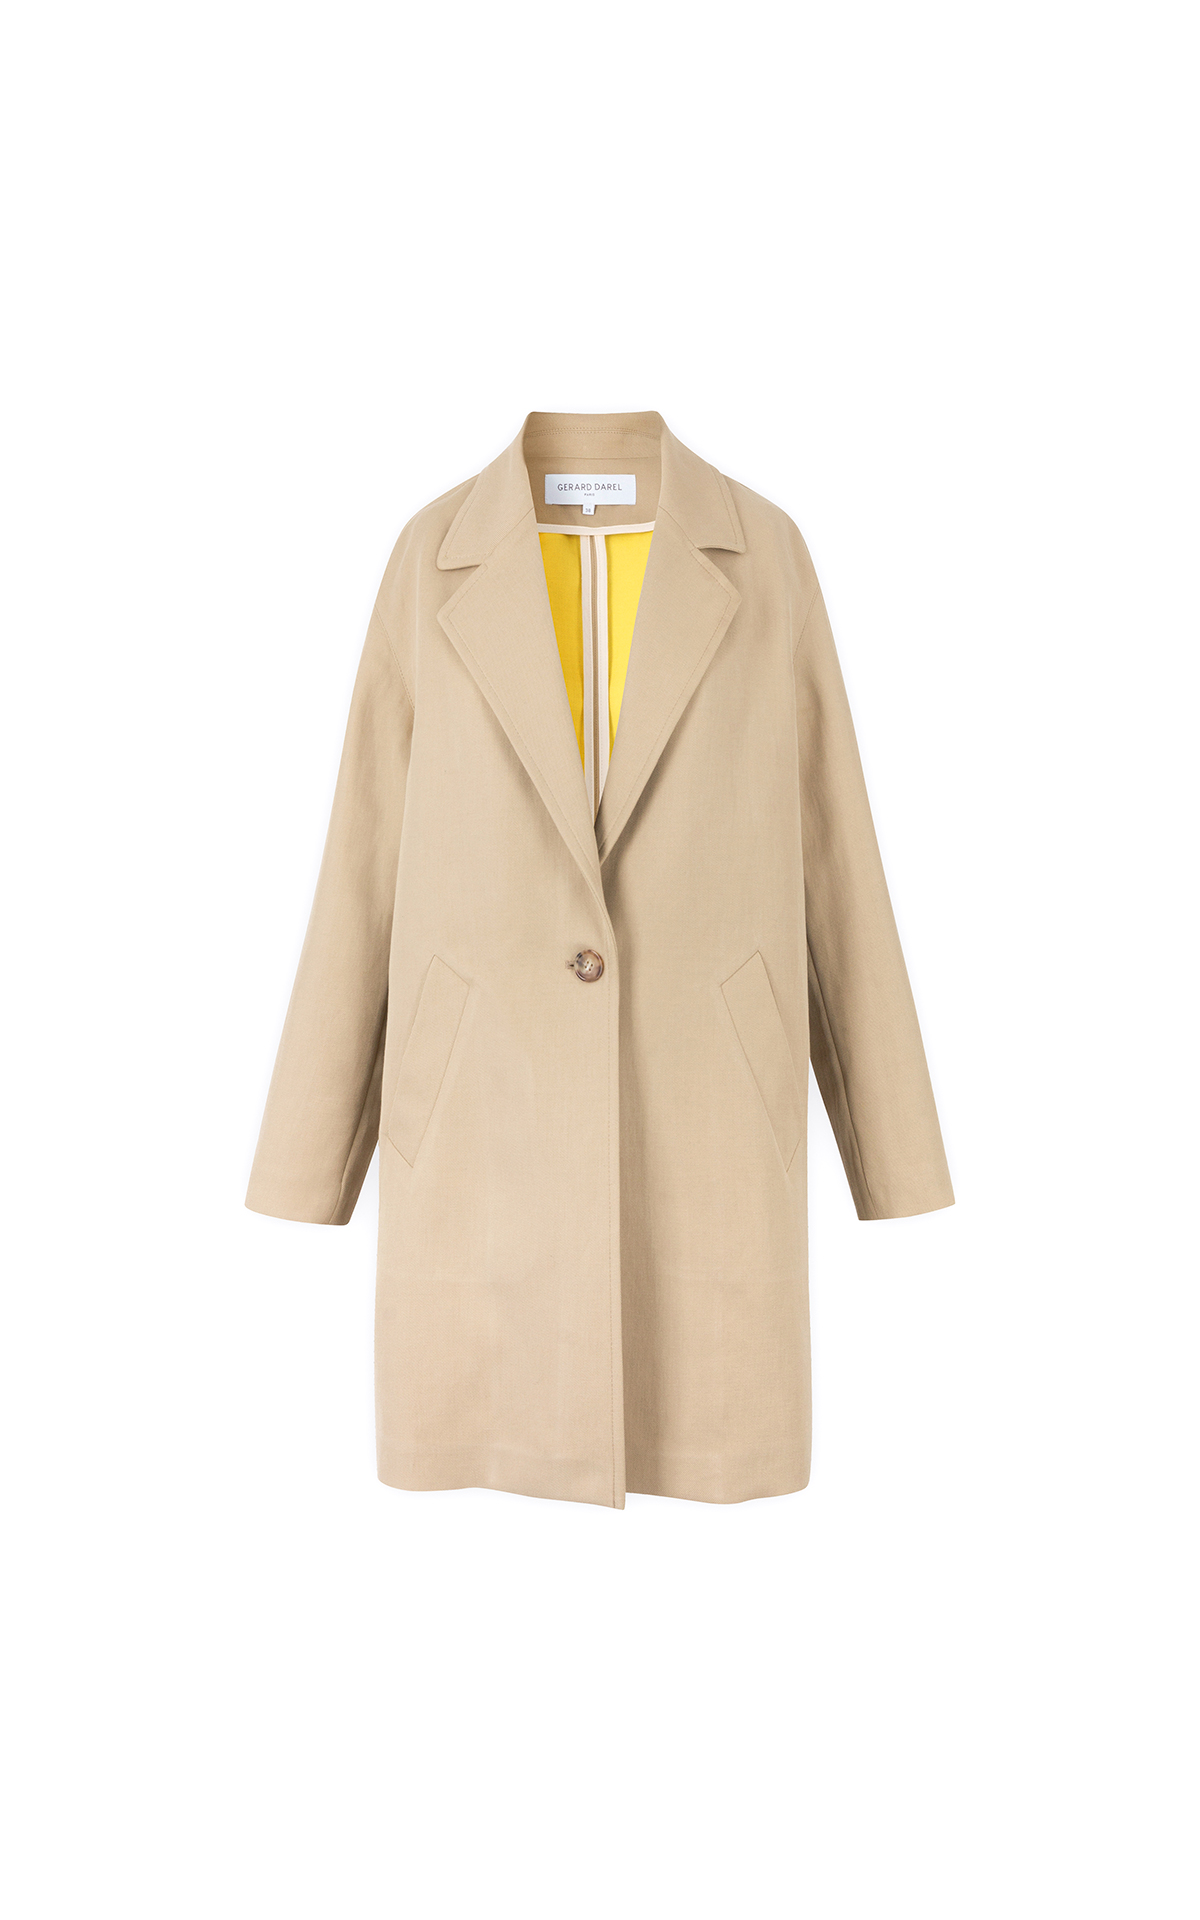 La Vallée Village Gerard Darel Rafaella coat